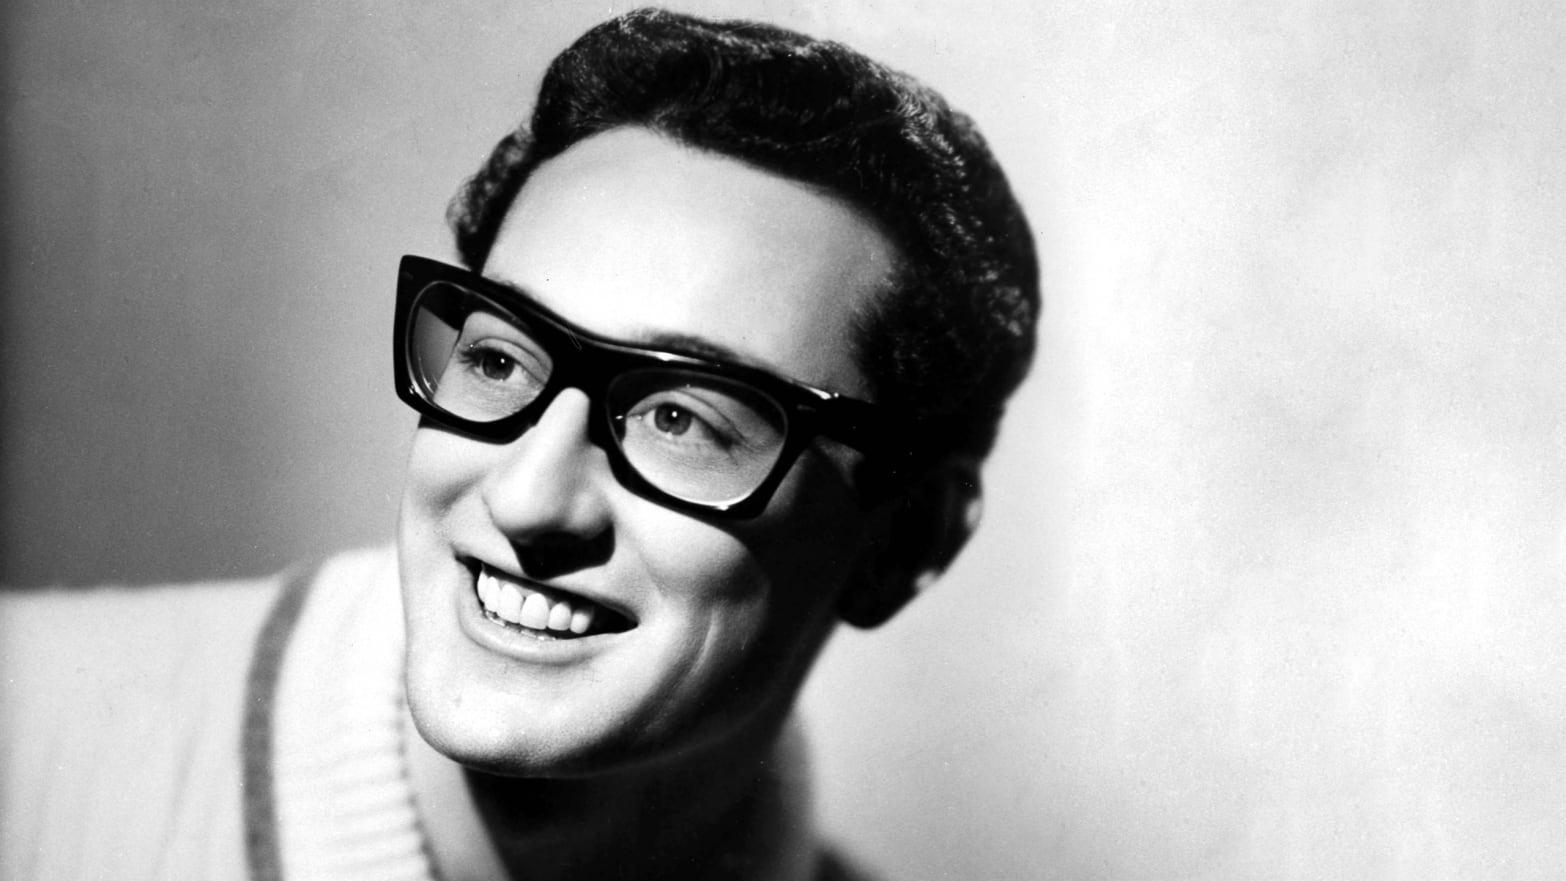 'The Day the Music Died': On the Enduring Genius of Buddy Holly, Sixty Years After His Death